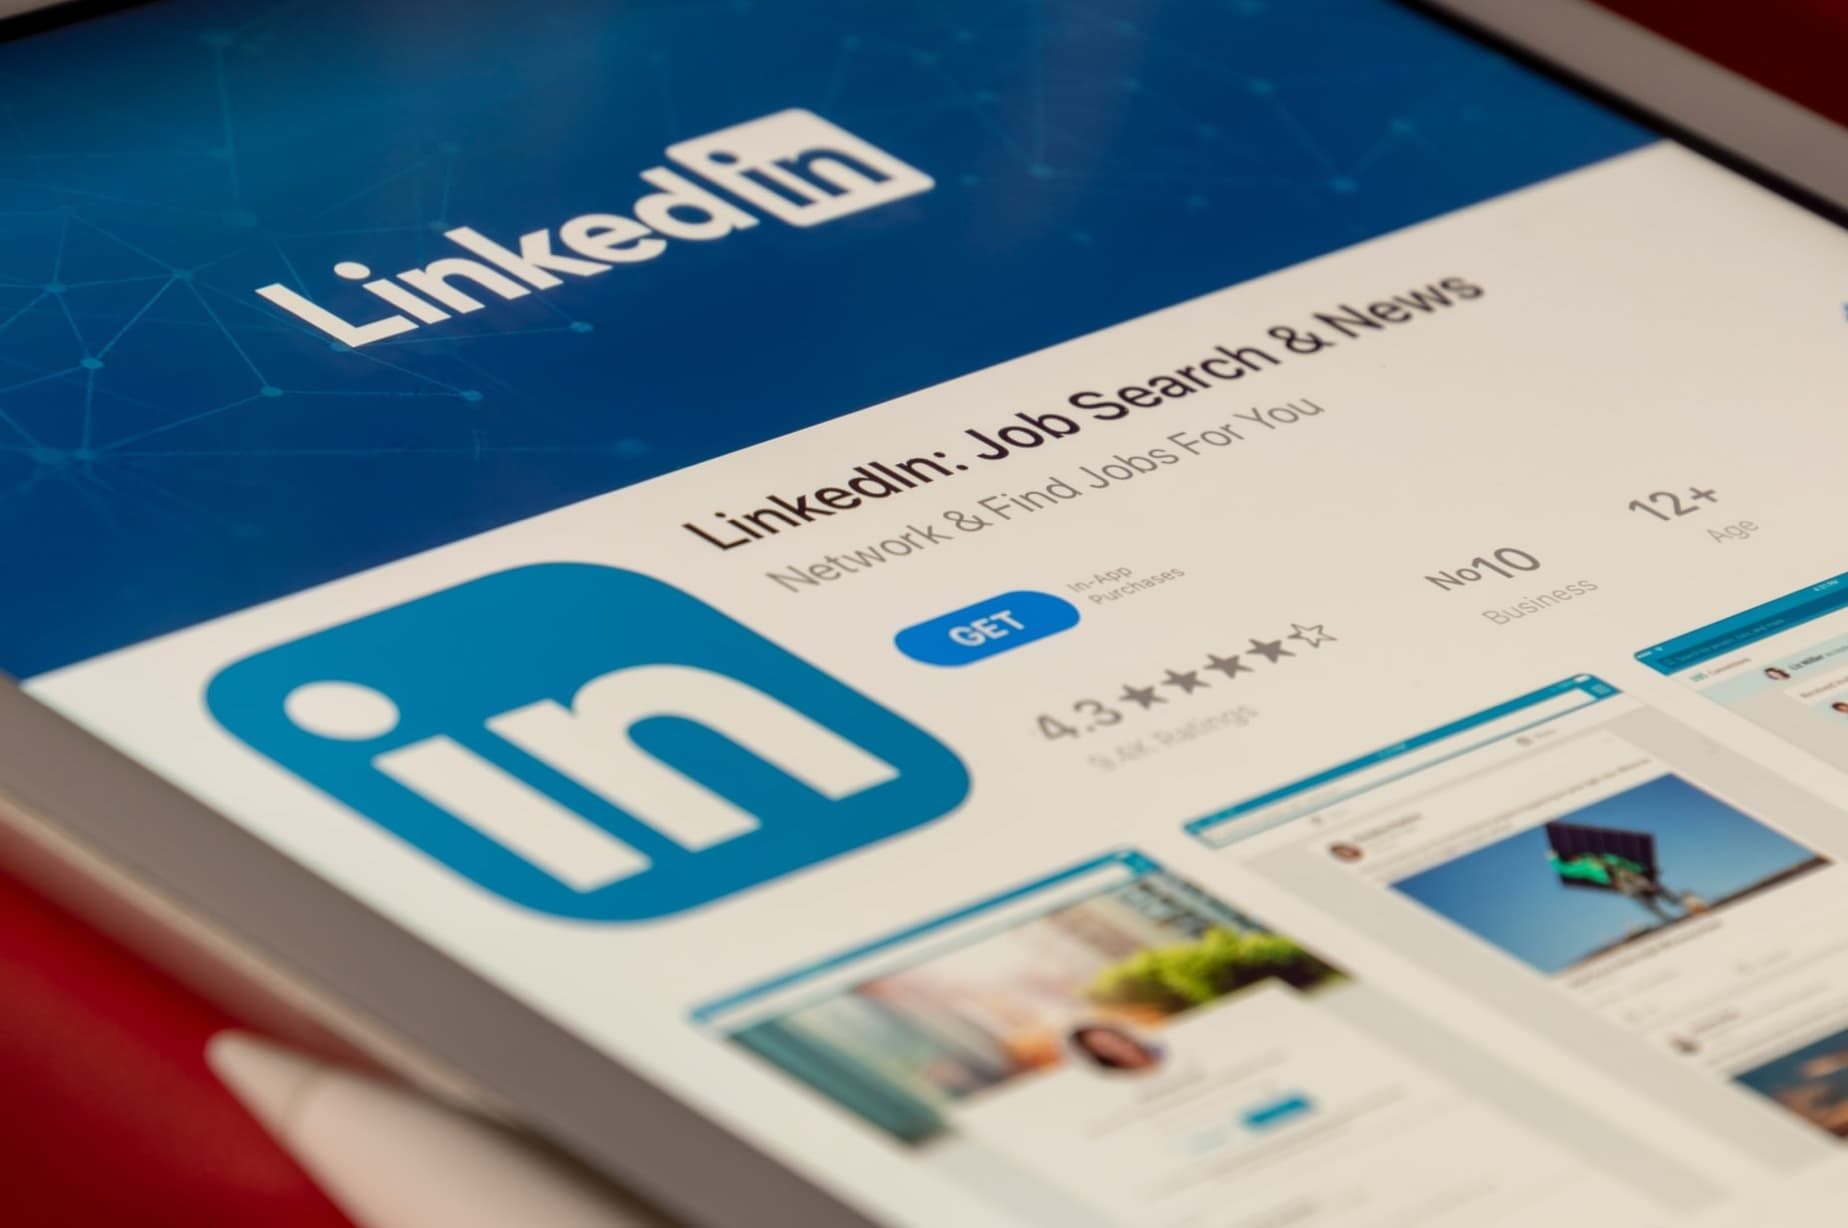 LinkedIn application opened on a tablet